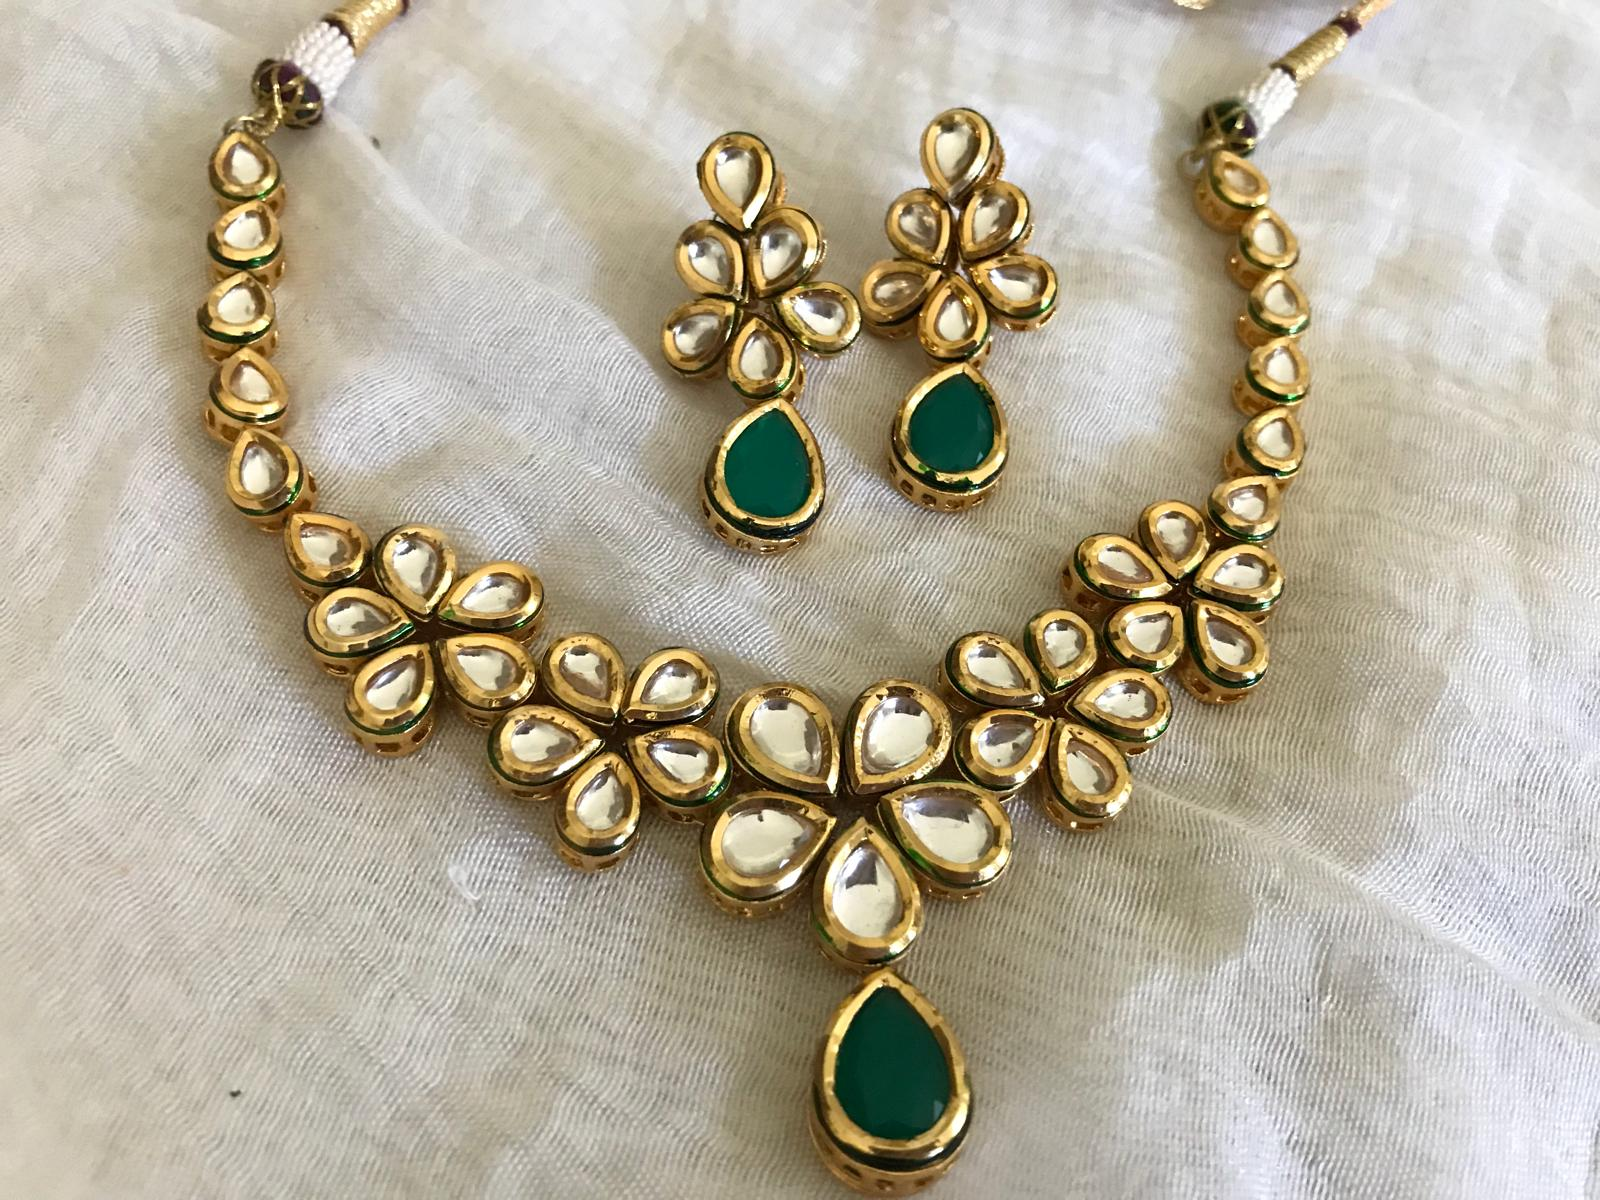 Gold Plated Kundan Choker Necklace Set With Green Stones & Matching Earrings